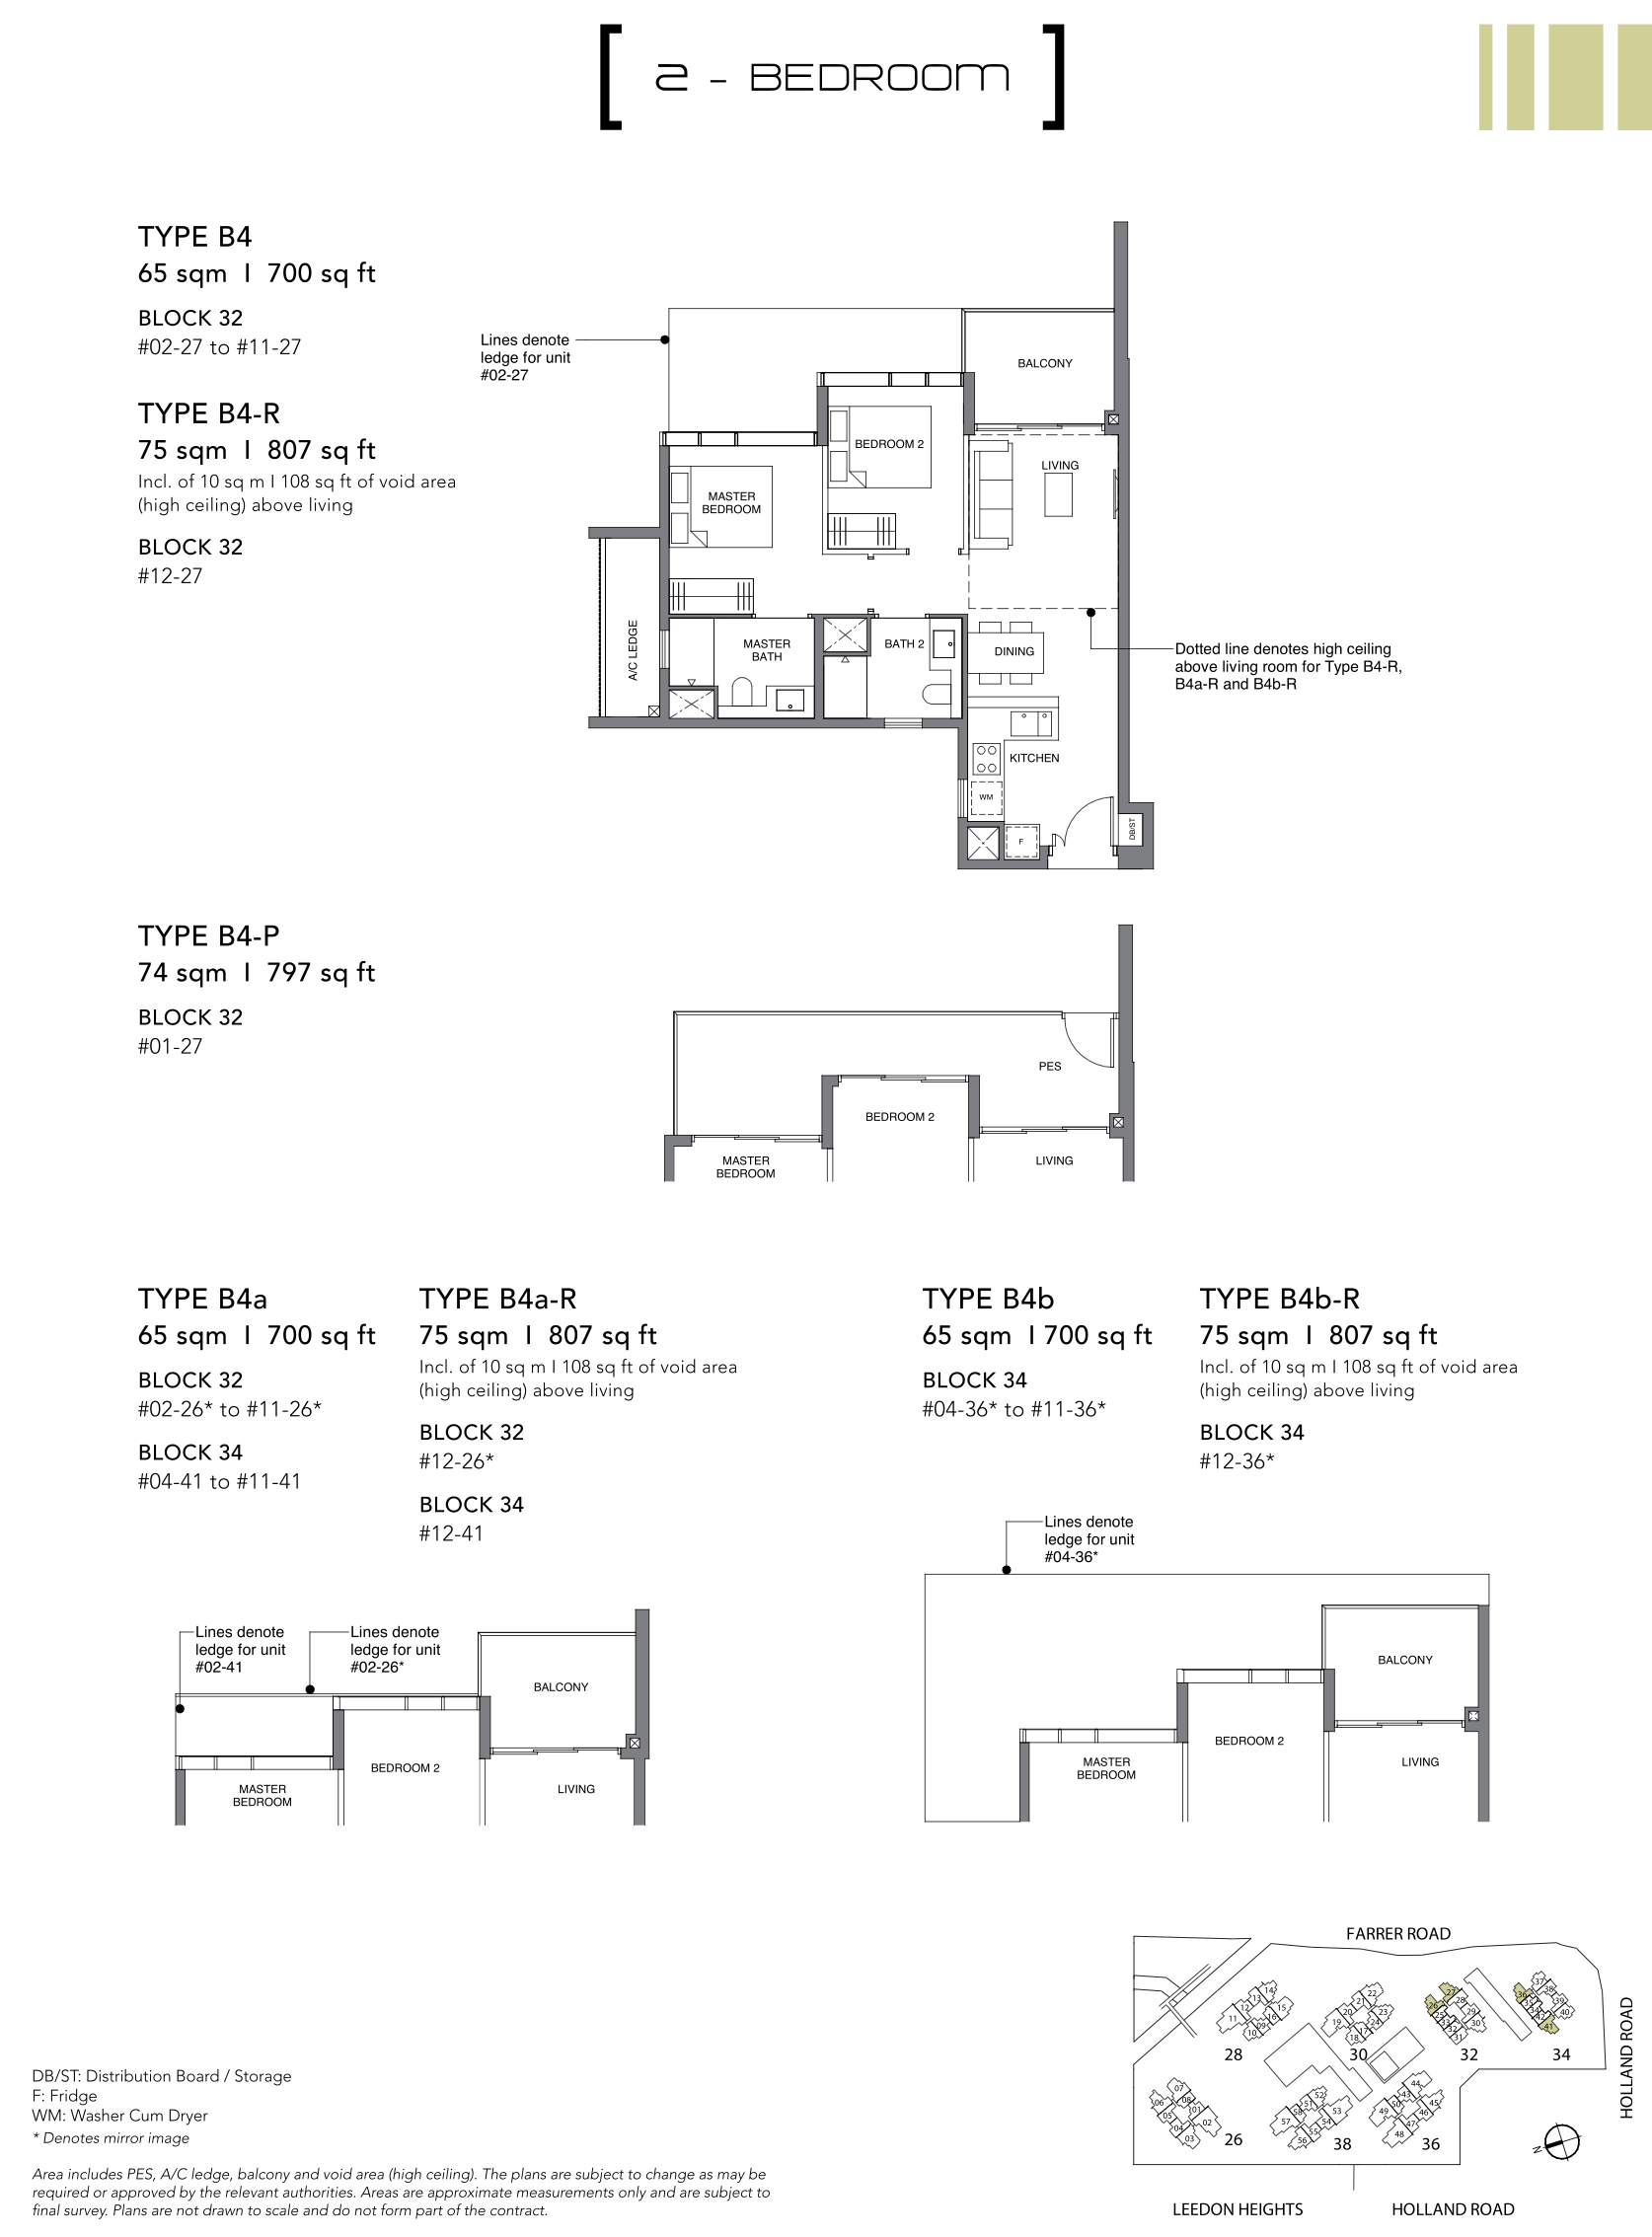 绿墩雅苑公寓户型图 Leedon Green floor plan 2 bedroom b4-b4a-b4b